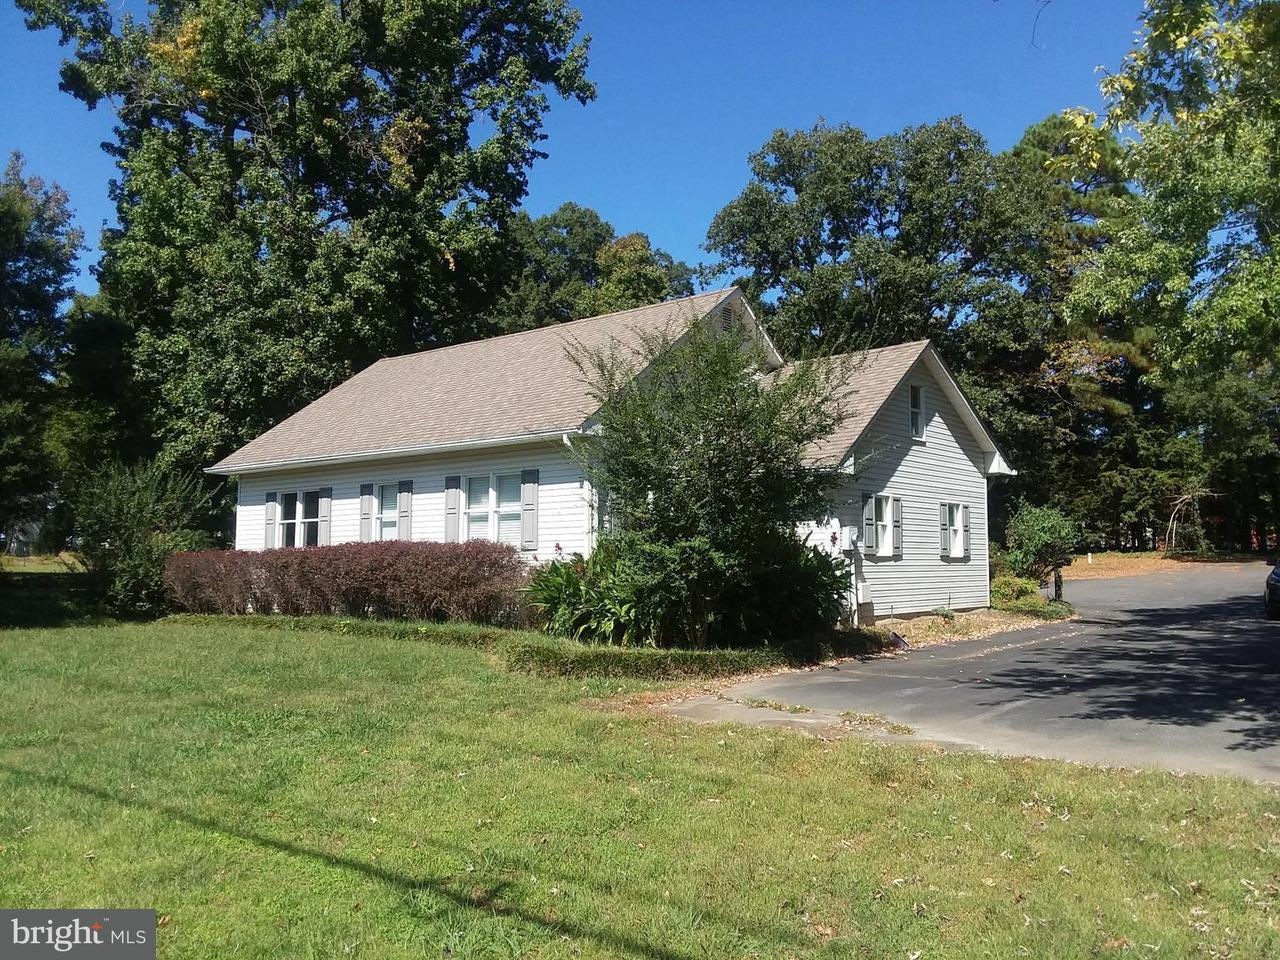 Other Residential for Rent at 23278 Three Notch Rd California, Maryland 20619 United States